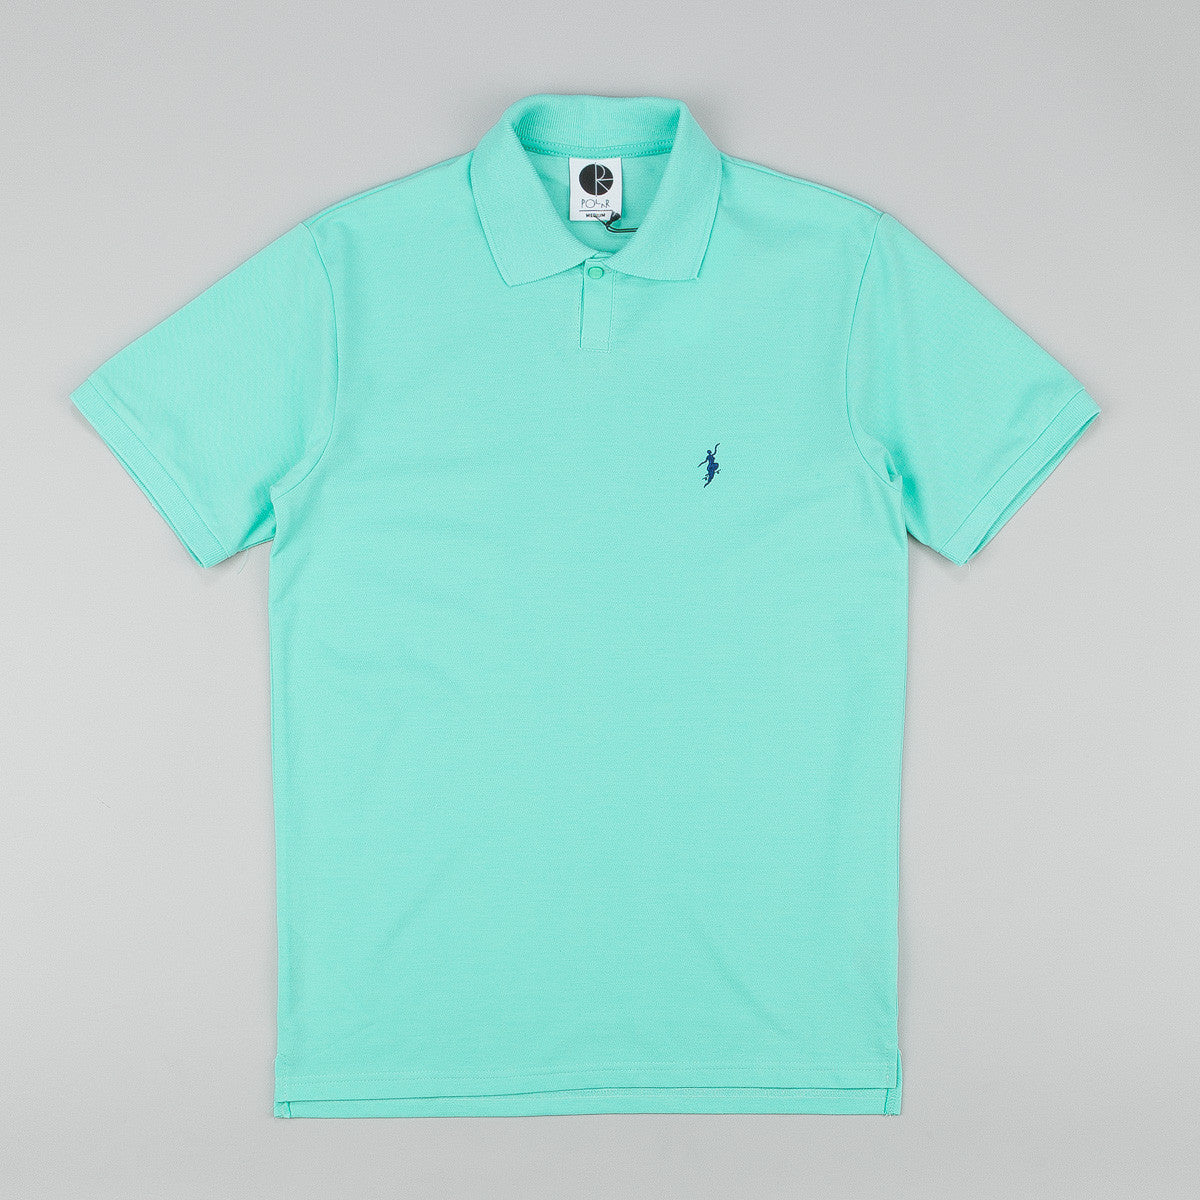 Polar No Comply Pike Polo Shirt - Pastel Green / Navy